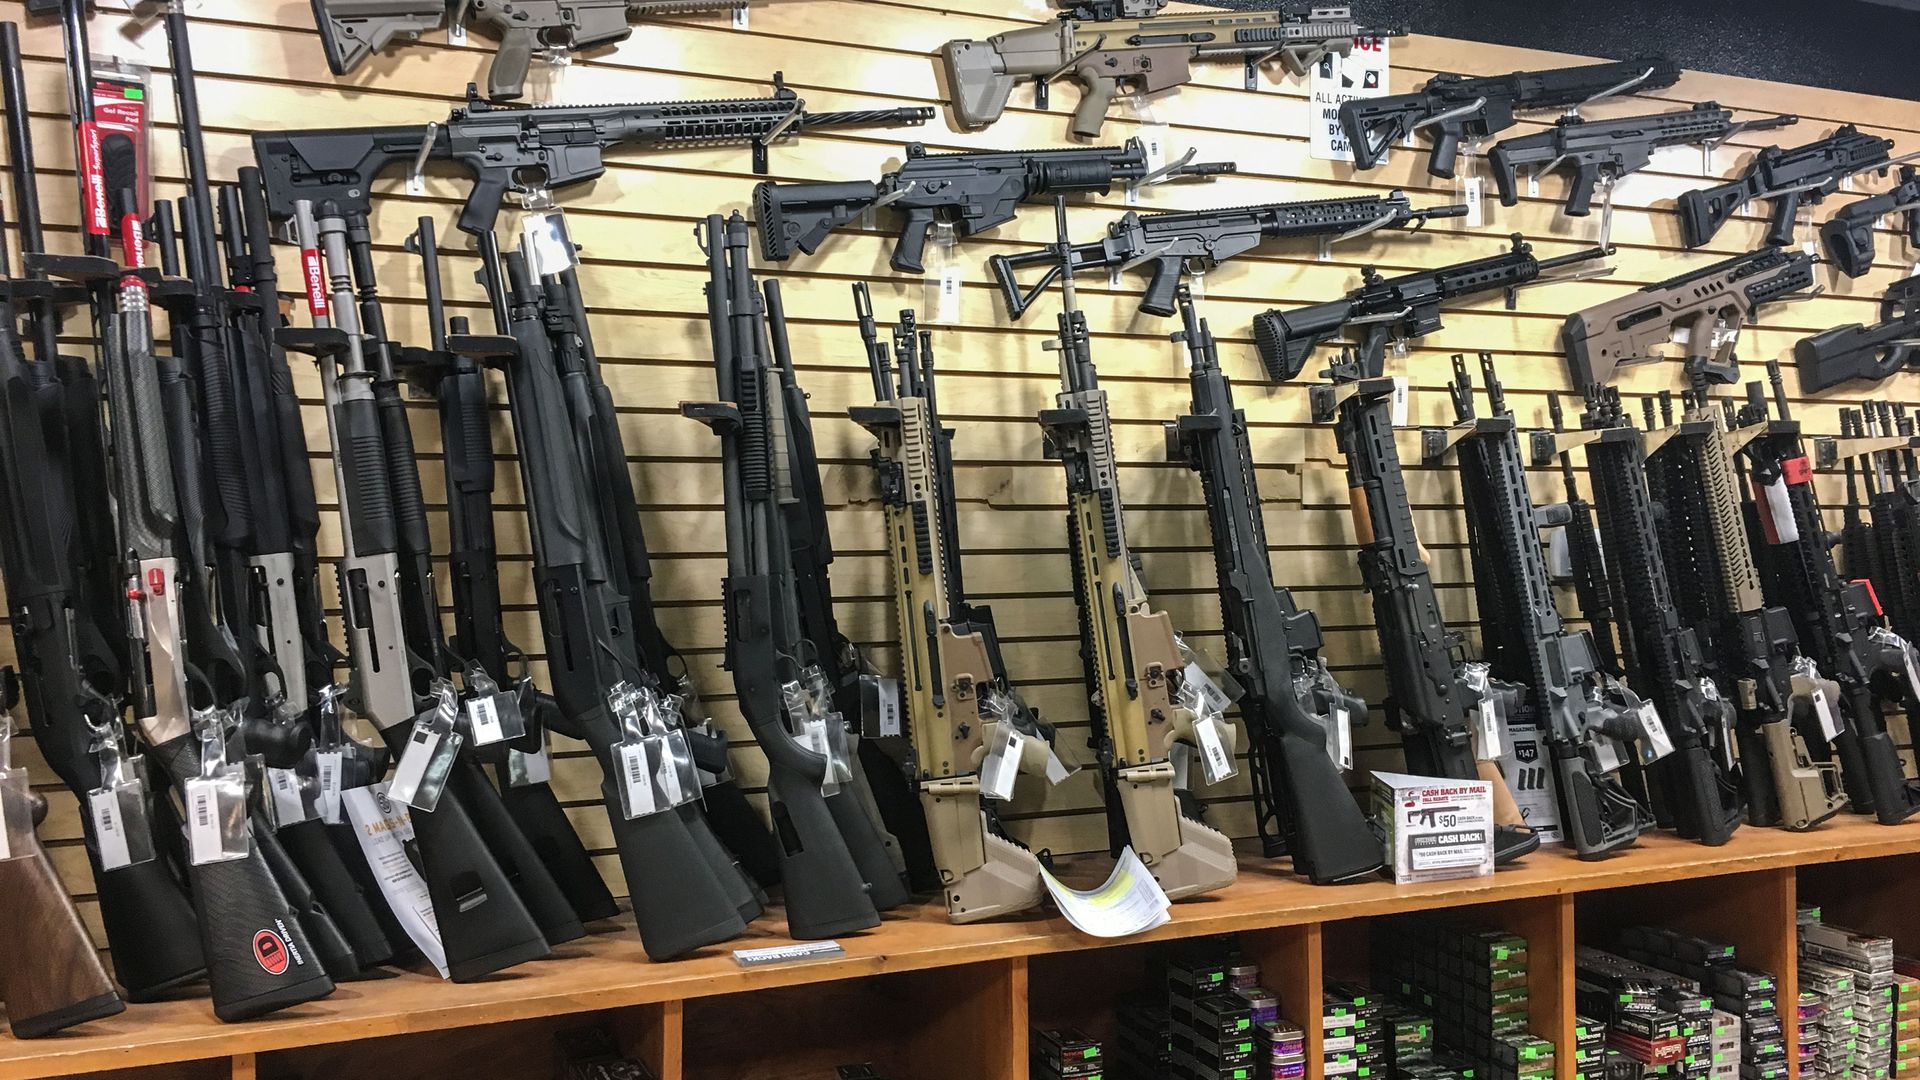 Semi-automatic rifles are seen for sale in a gun shop in Las Vegas, Nevada.